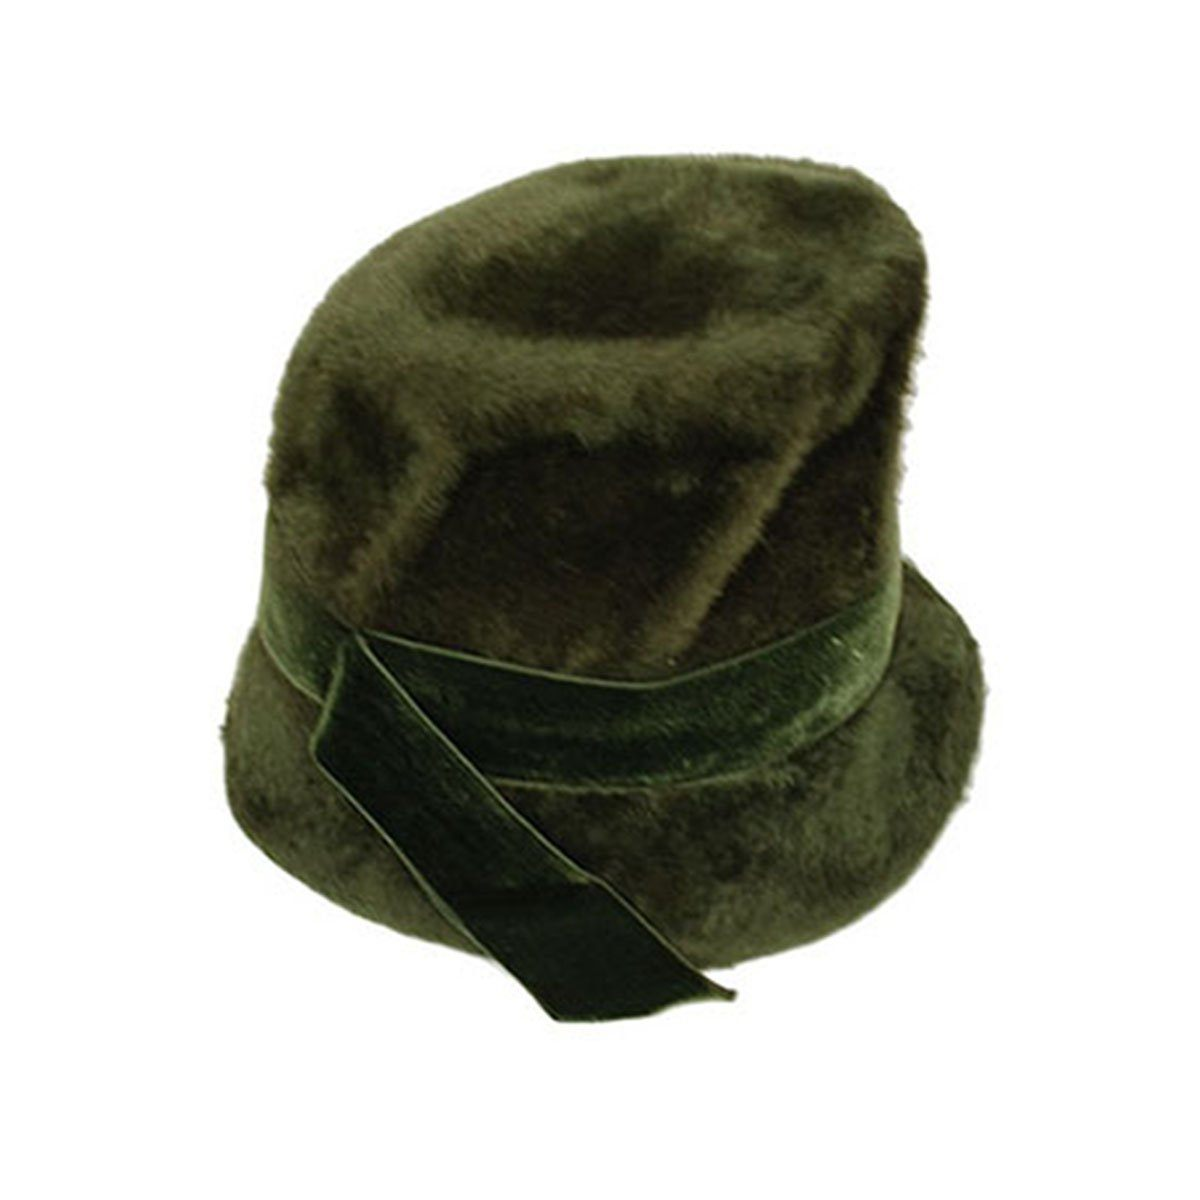 Saks Fifth Avenue 60s Mod Green Bucket Hat, Faux Fur